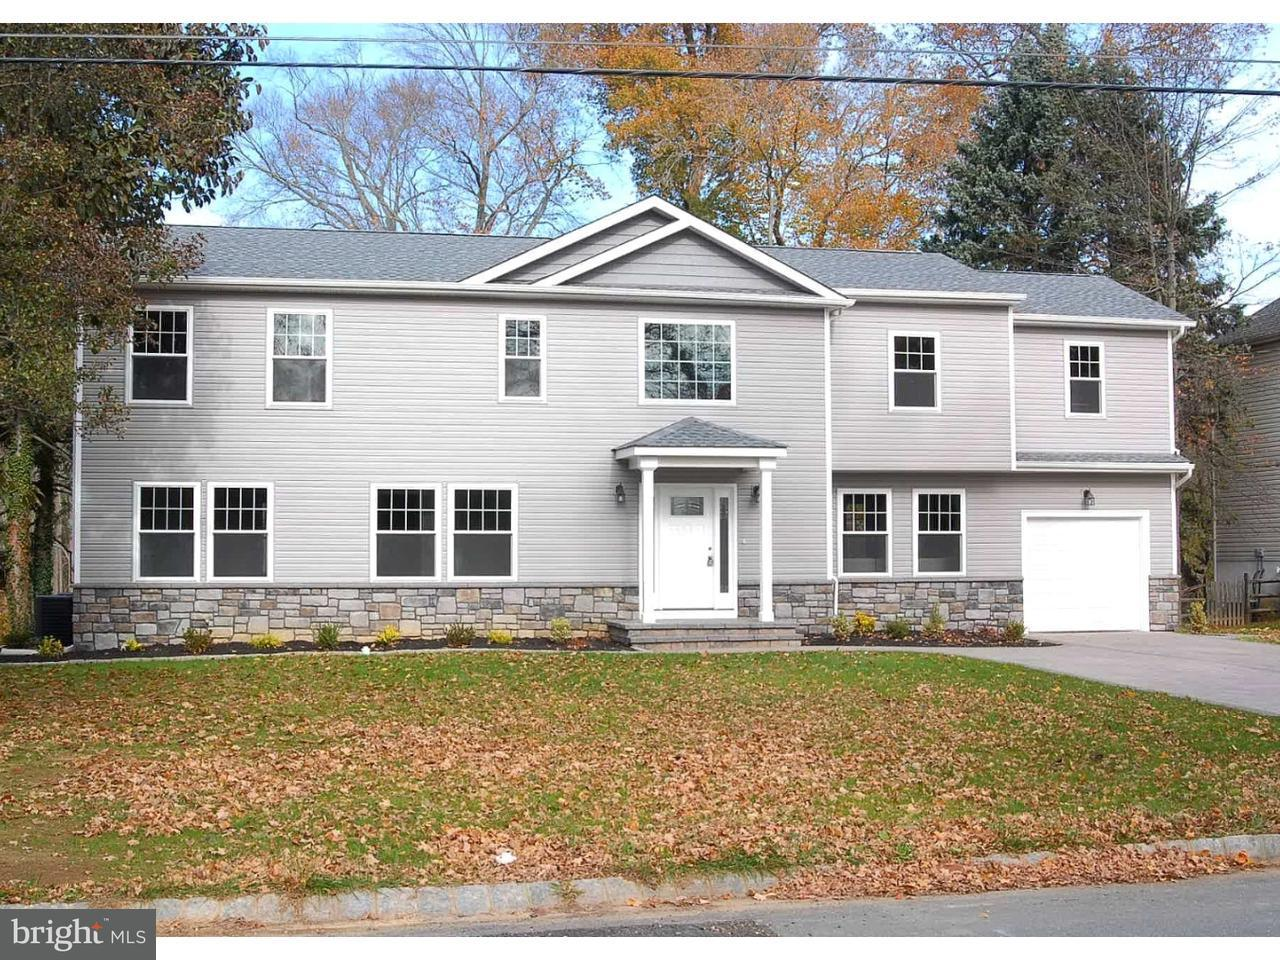 Single Family Home for Sale at 12 JEFFERS Road Plainsboro, New Jersey 08536 United StatesMunicipality: Plainsboro Township